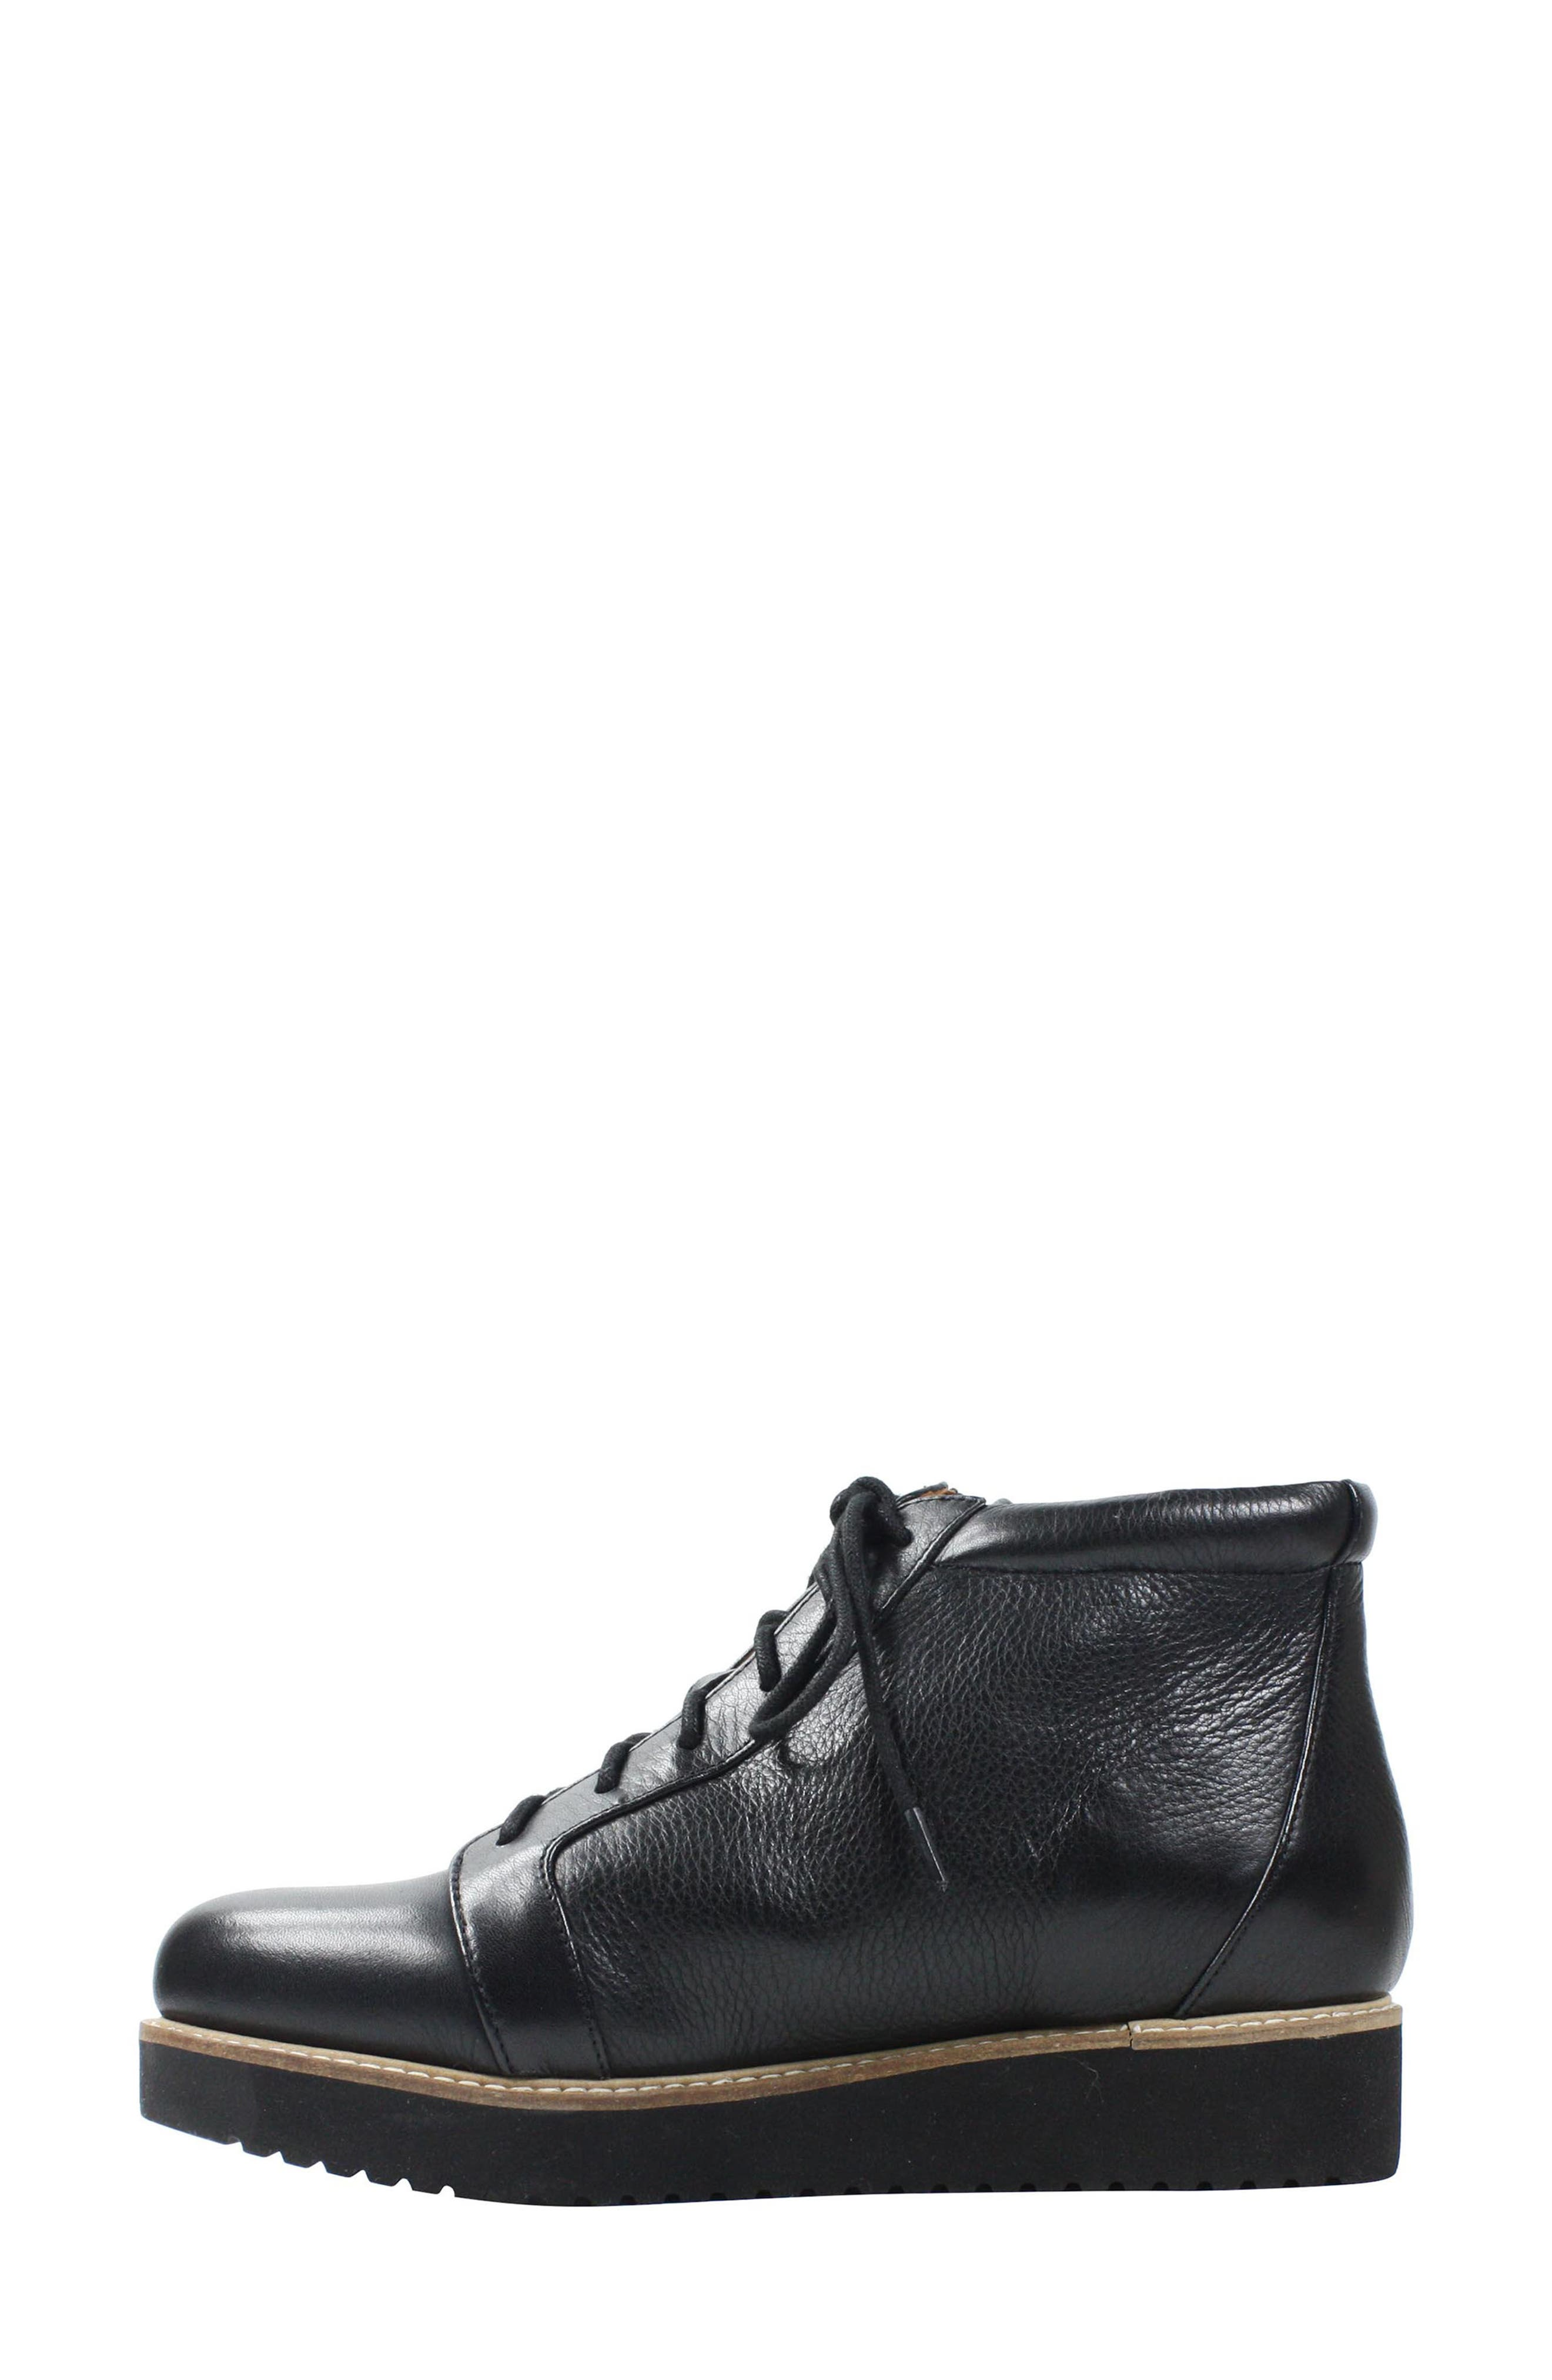 Xandrie Bootie,                             Alternate thumbnail 2, color,                             Black Leather